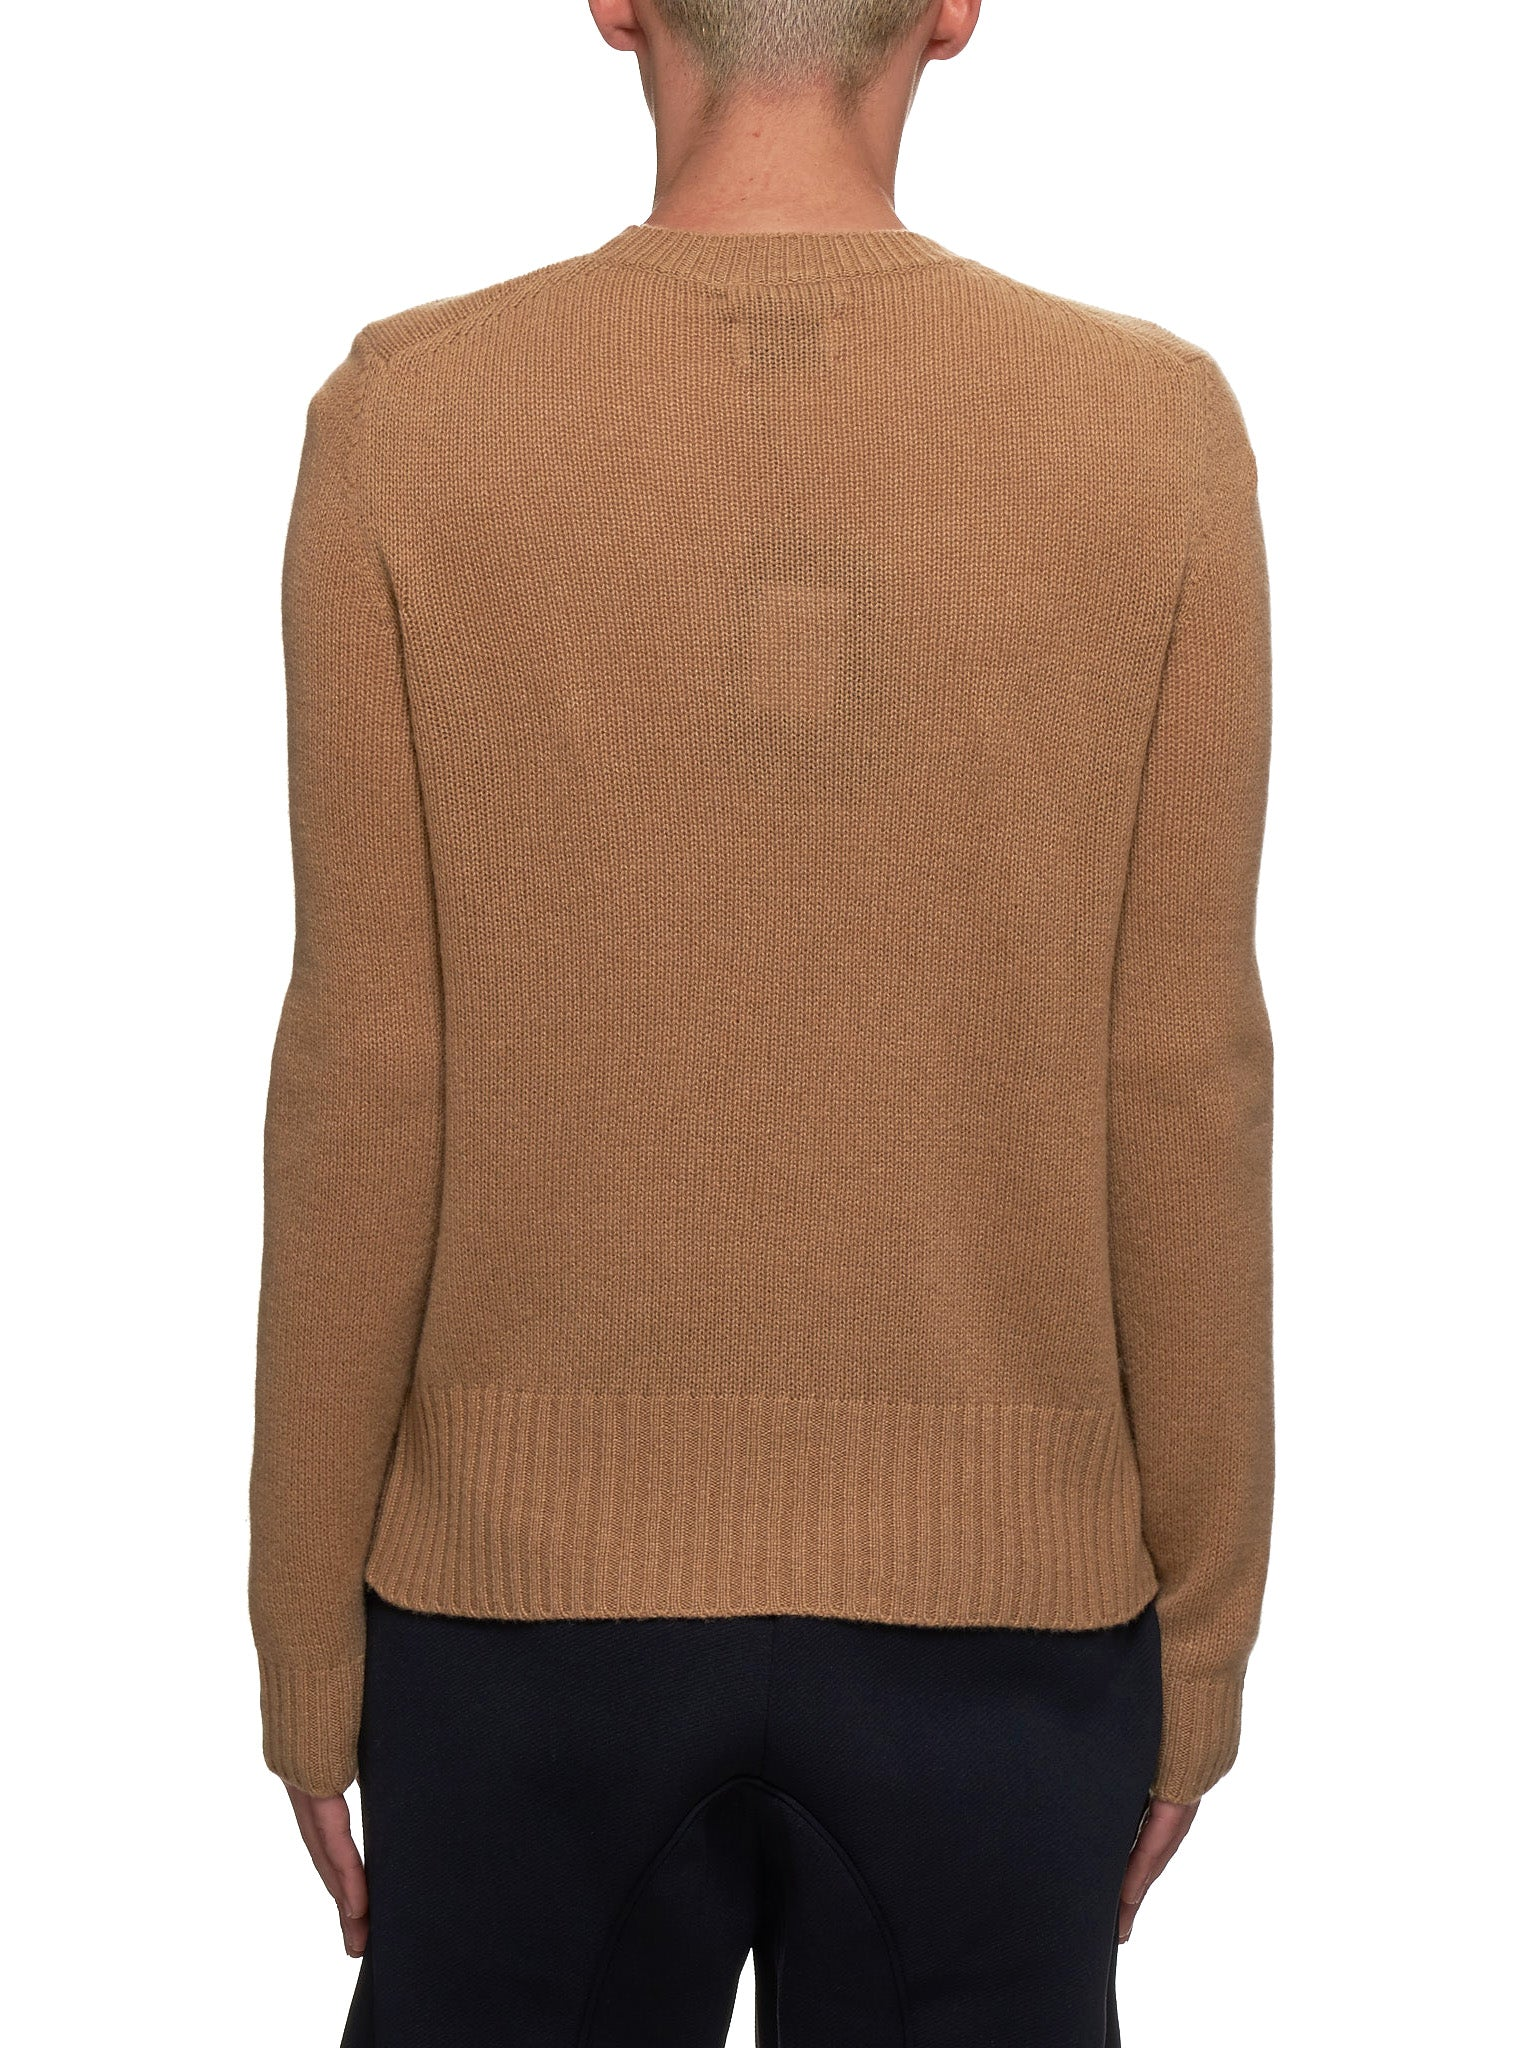 Bottega Veneta Sweater - Hlorenzo Back